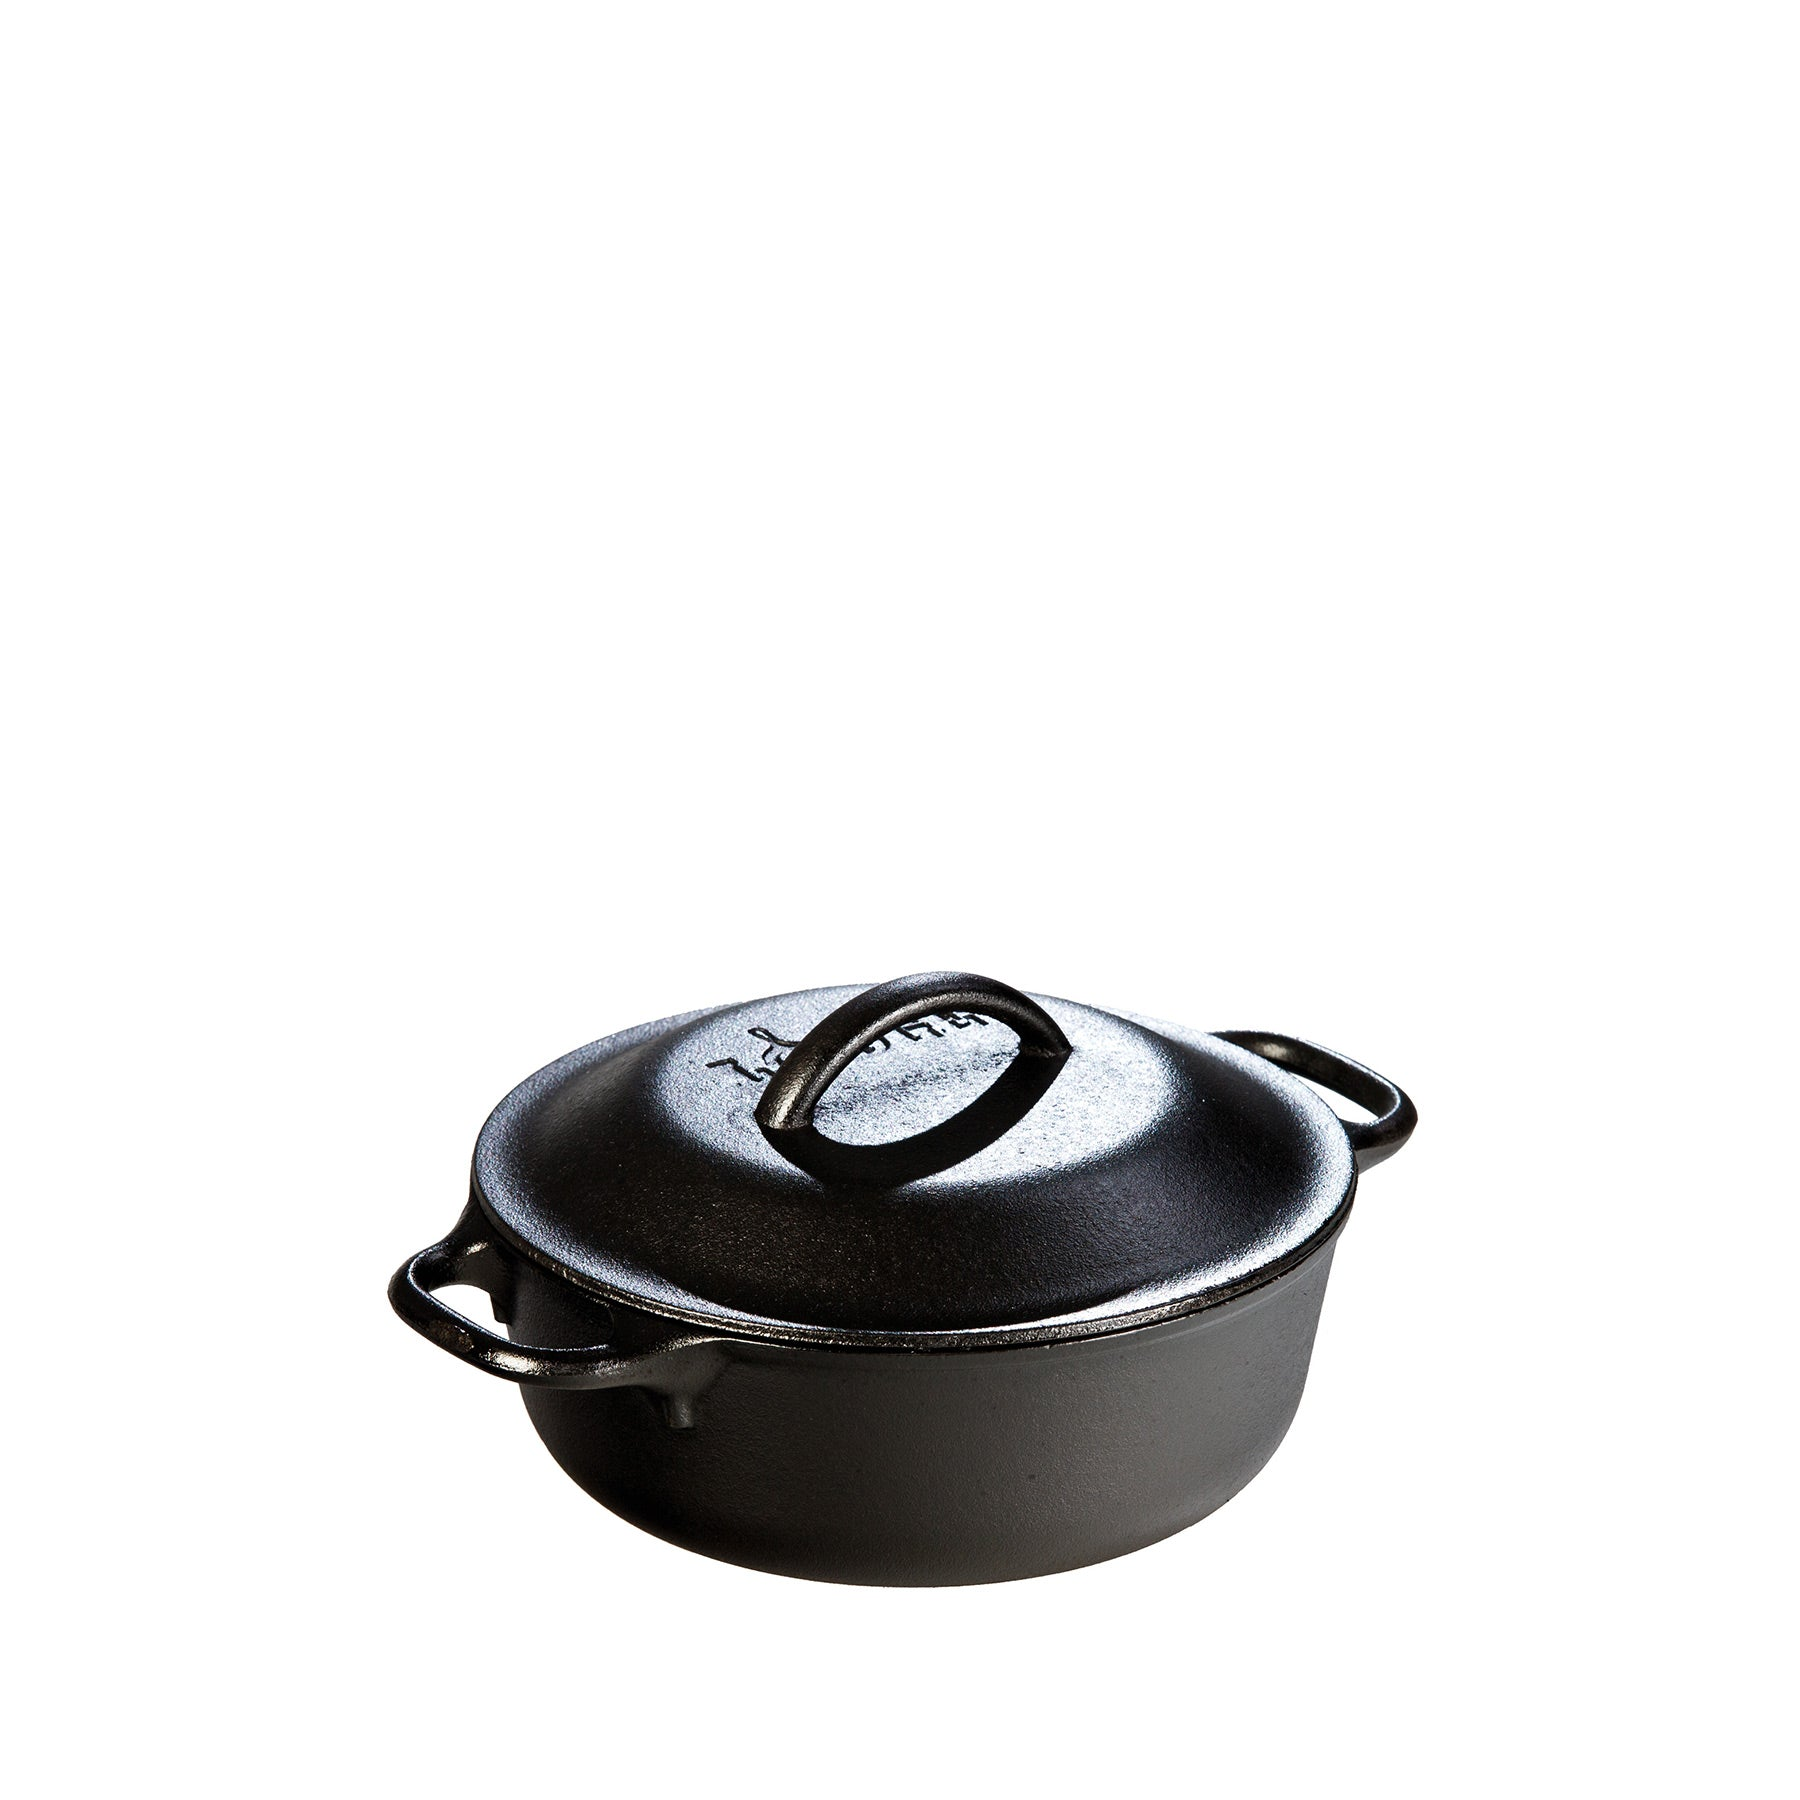 Cast Iron Serving Pot 2qt Zoom Image 1